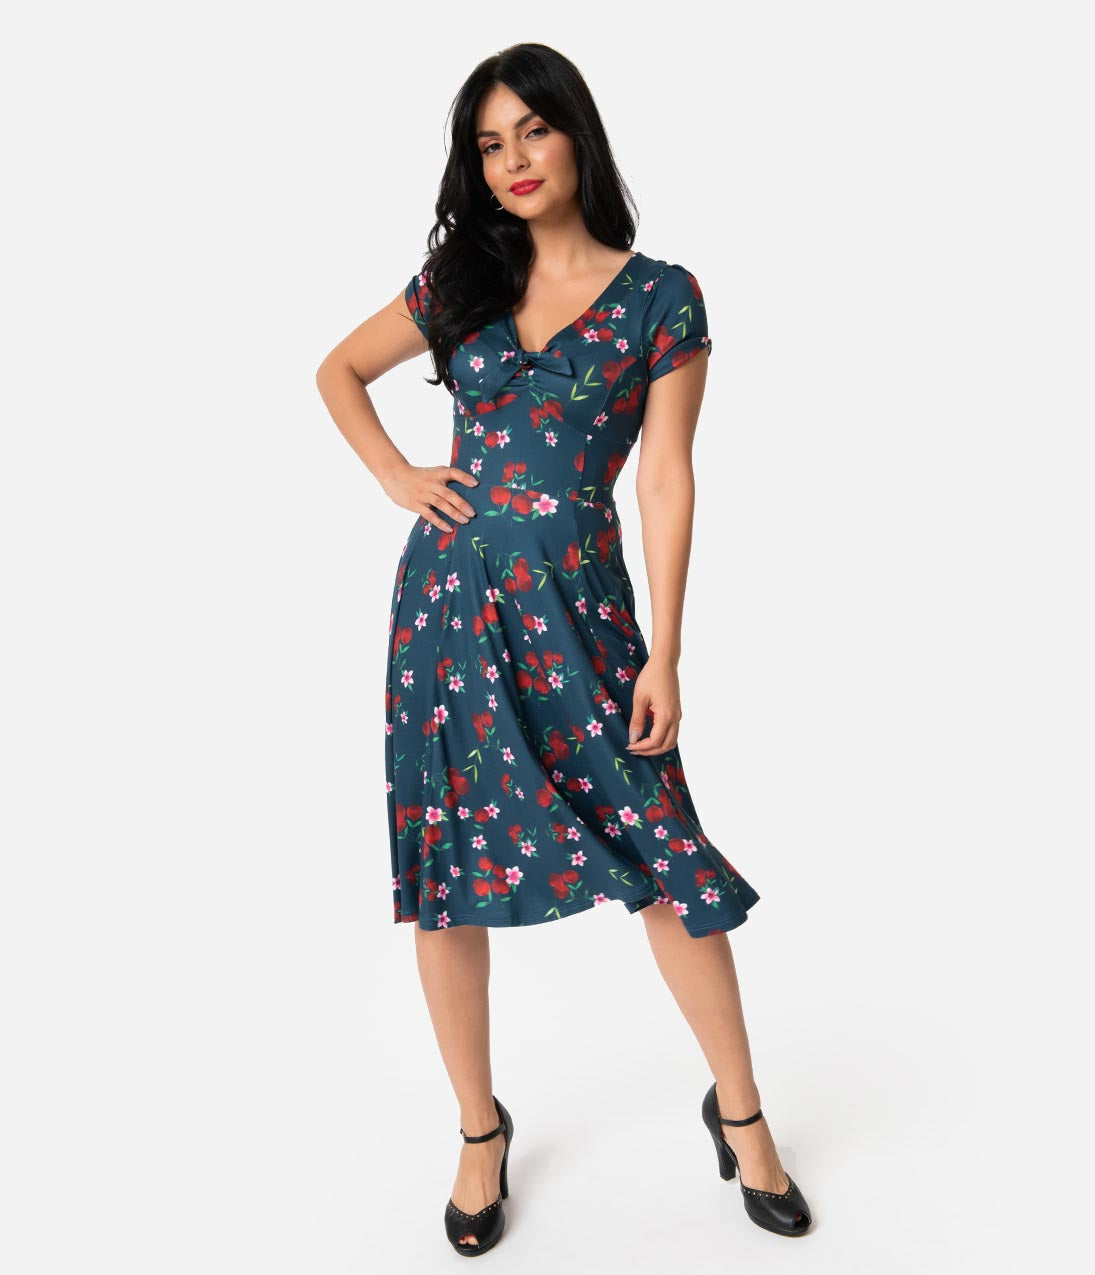 1940s Fashion Advice for Short Women Unique Vintage 1940S Style Navy  Cherry Floral Short Sleeve Natalie Swing Dress $88.00 AT vintagedancer.com